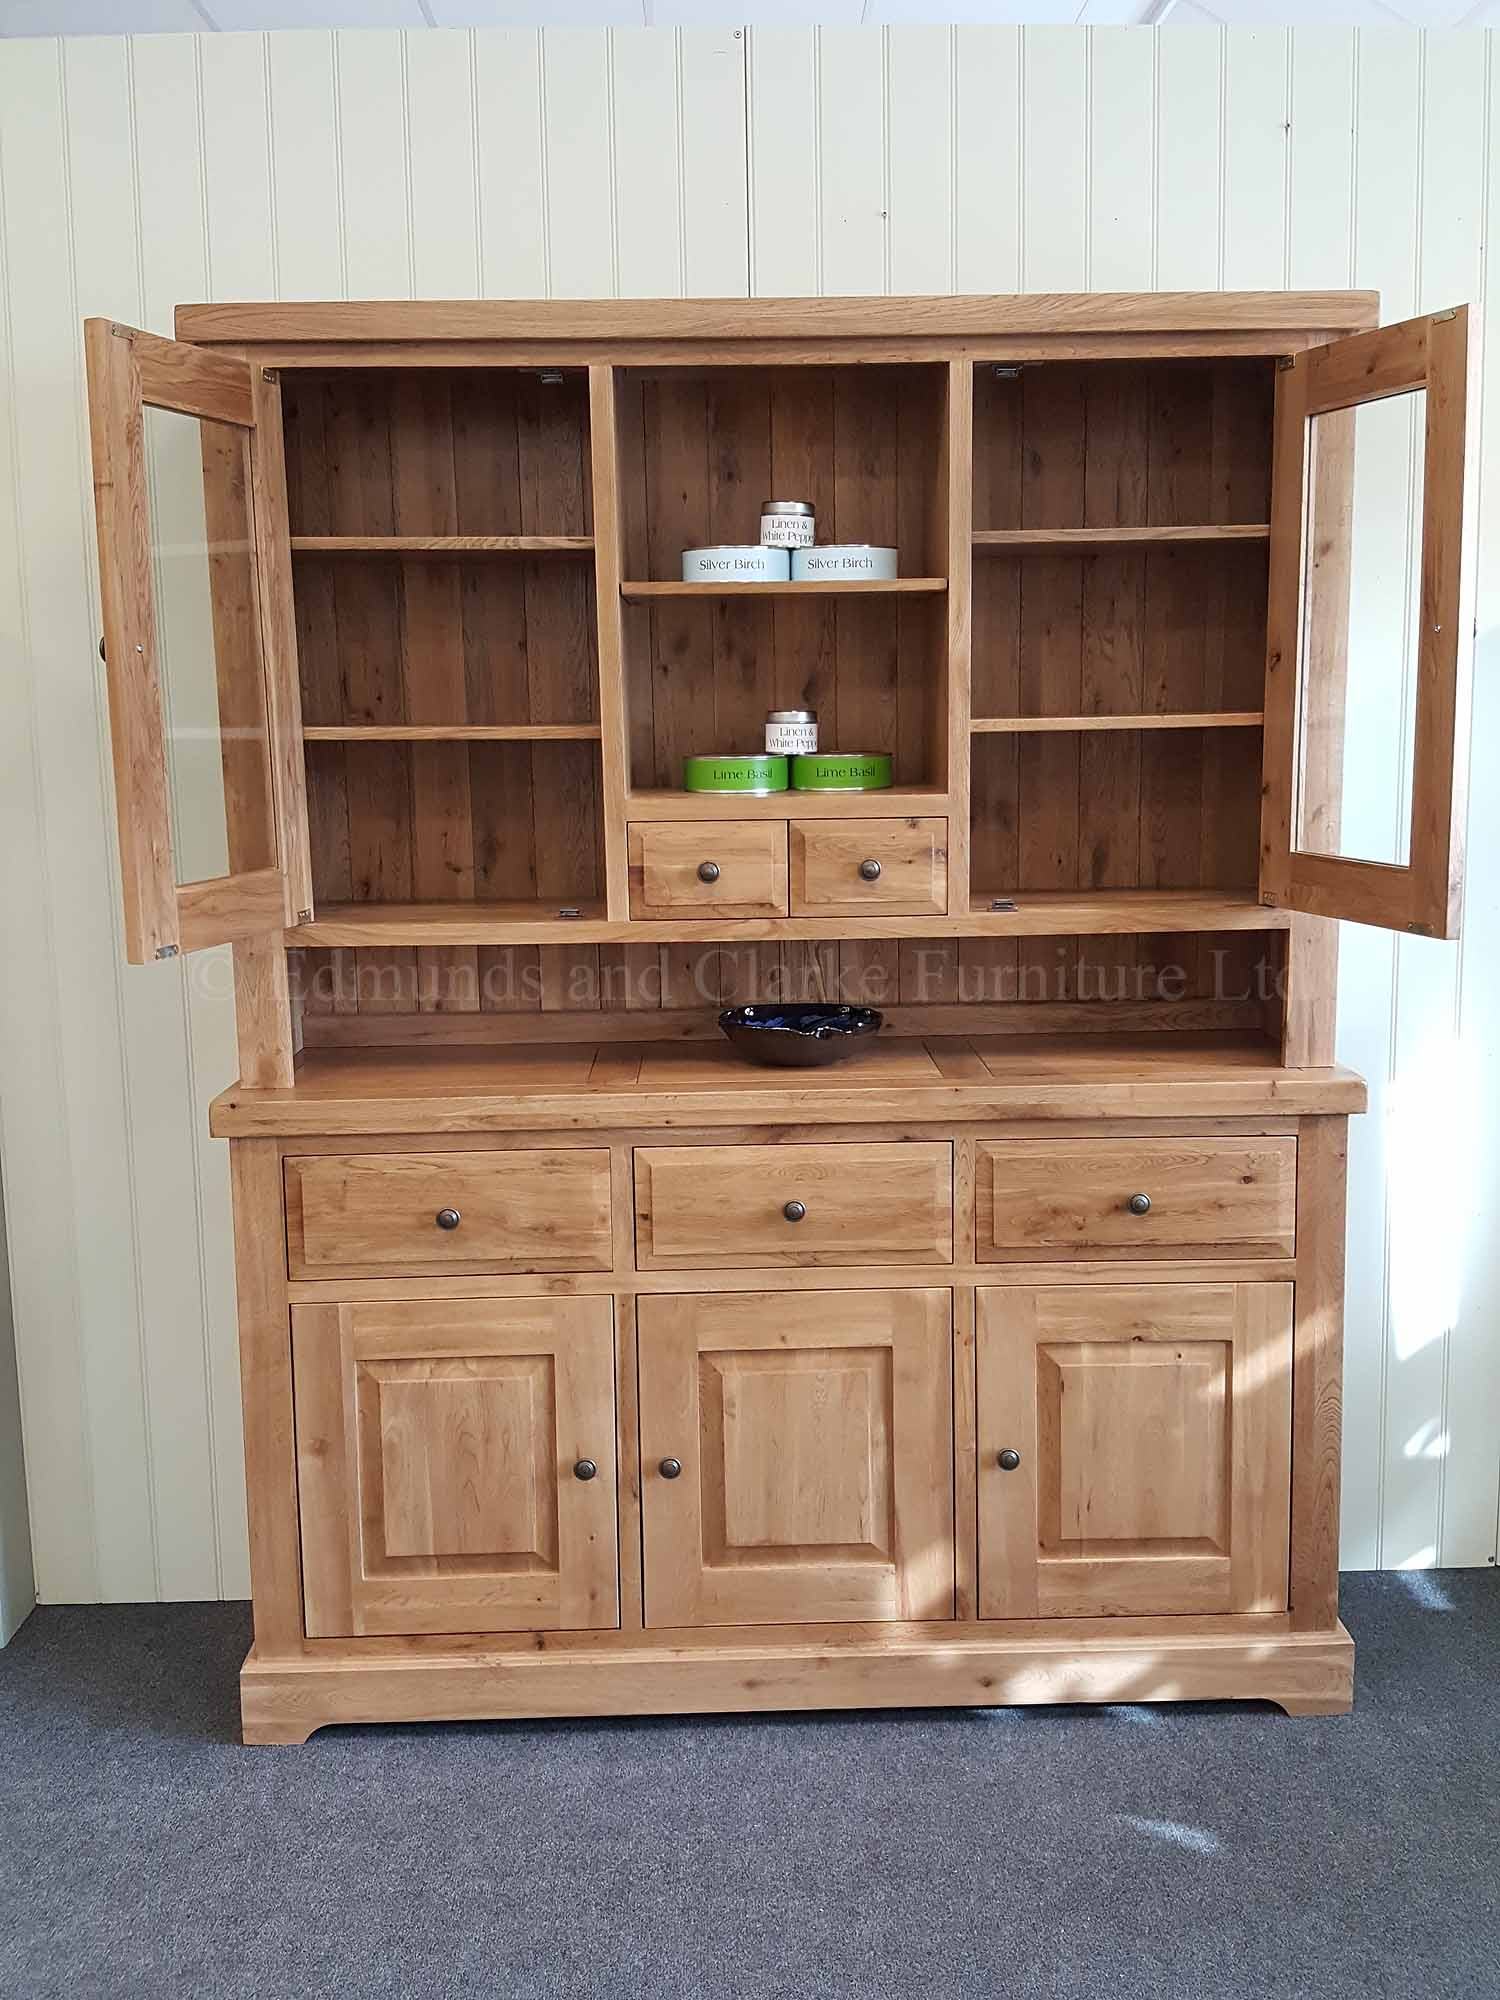 Dresser made from solid oak with glazed doors in rack and loose wine rack in sideboard